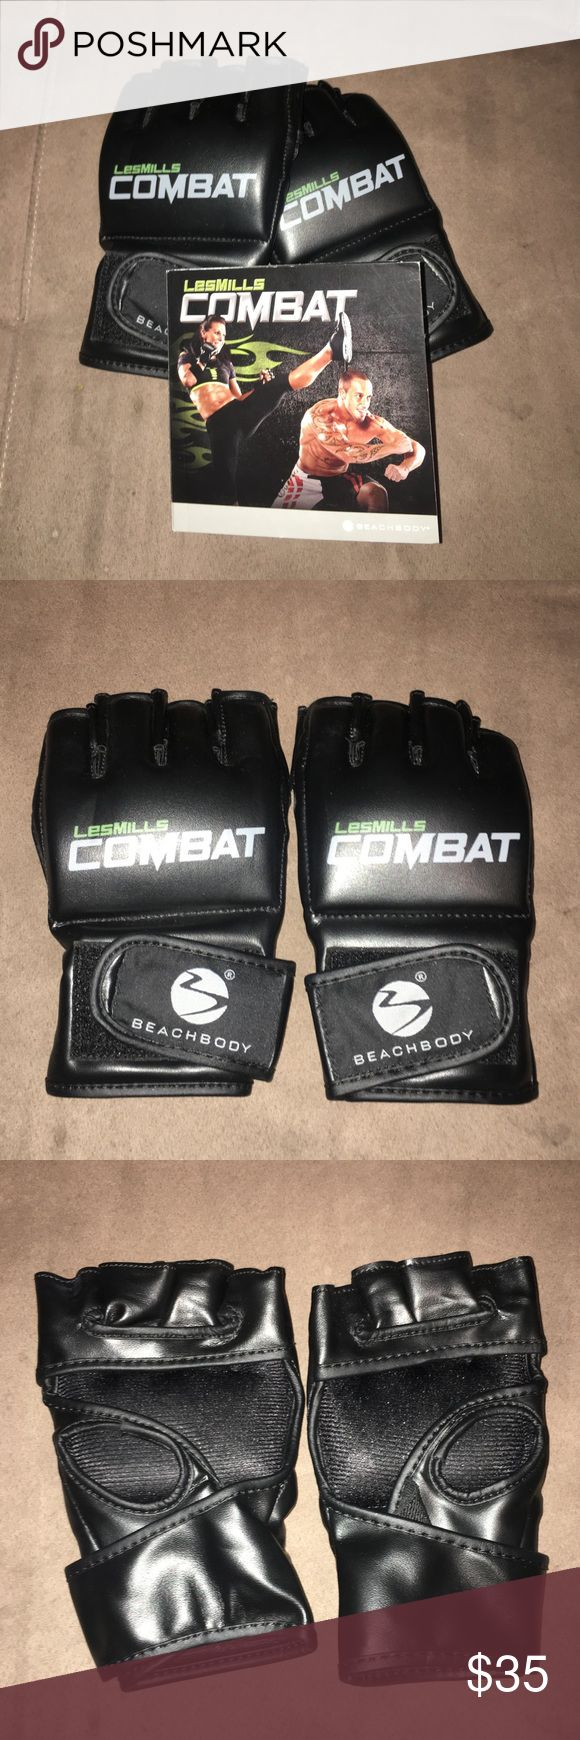 Les Mills Combat DVDs and gloves From Beachbody, Les Mills Combat DVDs with gloves. Super fun workout! The 6 DVDs included are The Basics, Combat Kick Start/Combat Power Kata, Combat Extreme Cardio Fighter, Combat Live Ultimate Warrior's Workout, Power HIIT 1/Shock Plyo HIIT 2 & Combat 30 Live. There's 2 empty slots in the DVD case that are available for order through Beachbody if you would want the extra 2 (Warrior 1 Upper Body Blow Out/Warrior 2 Lower Body Lean Out & Core Attack/Inner…